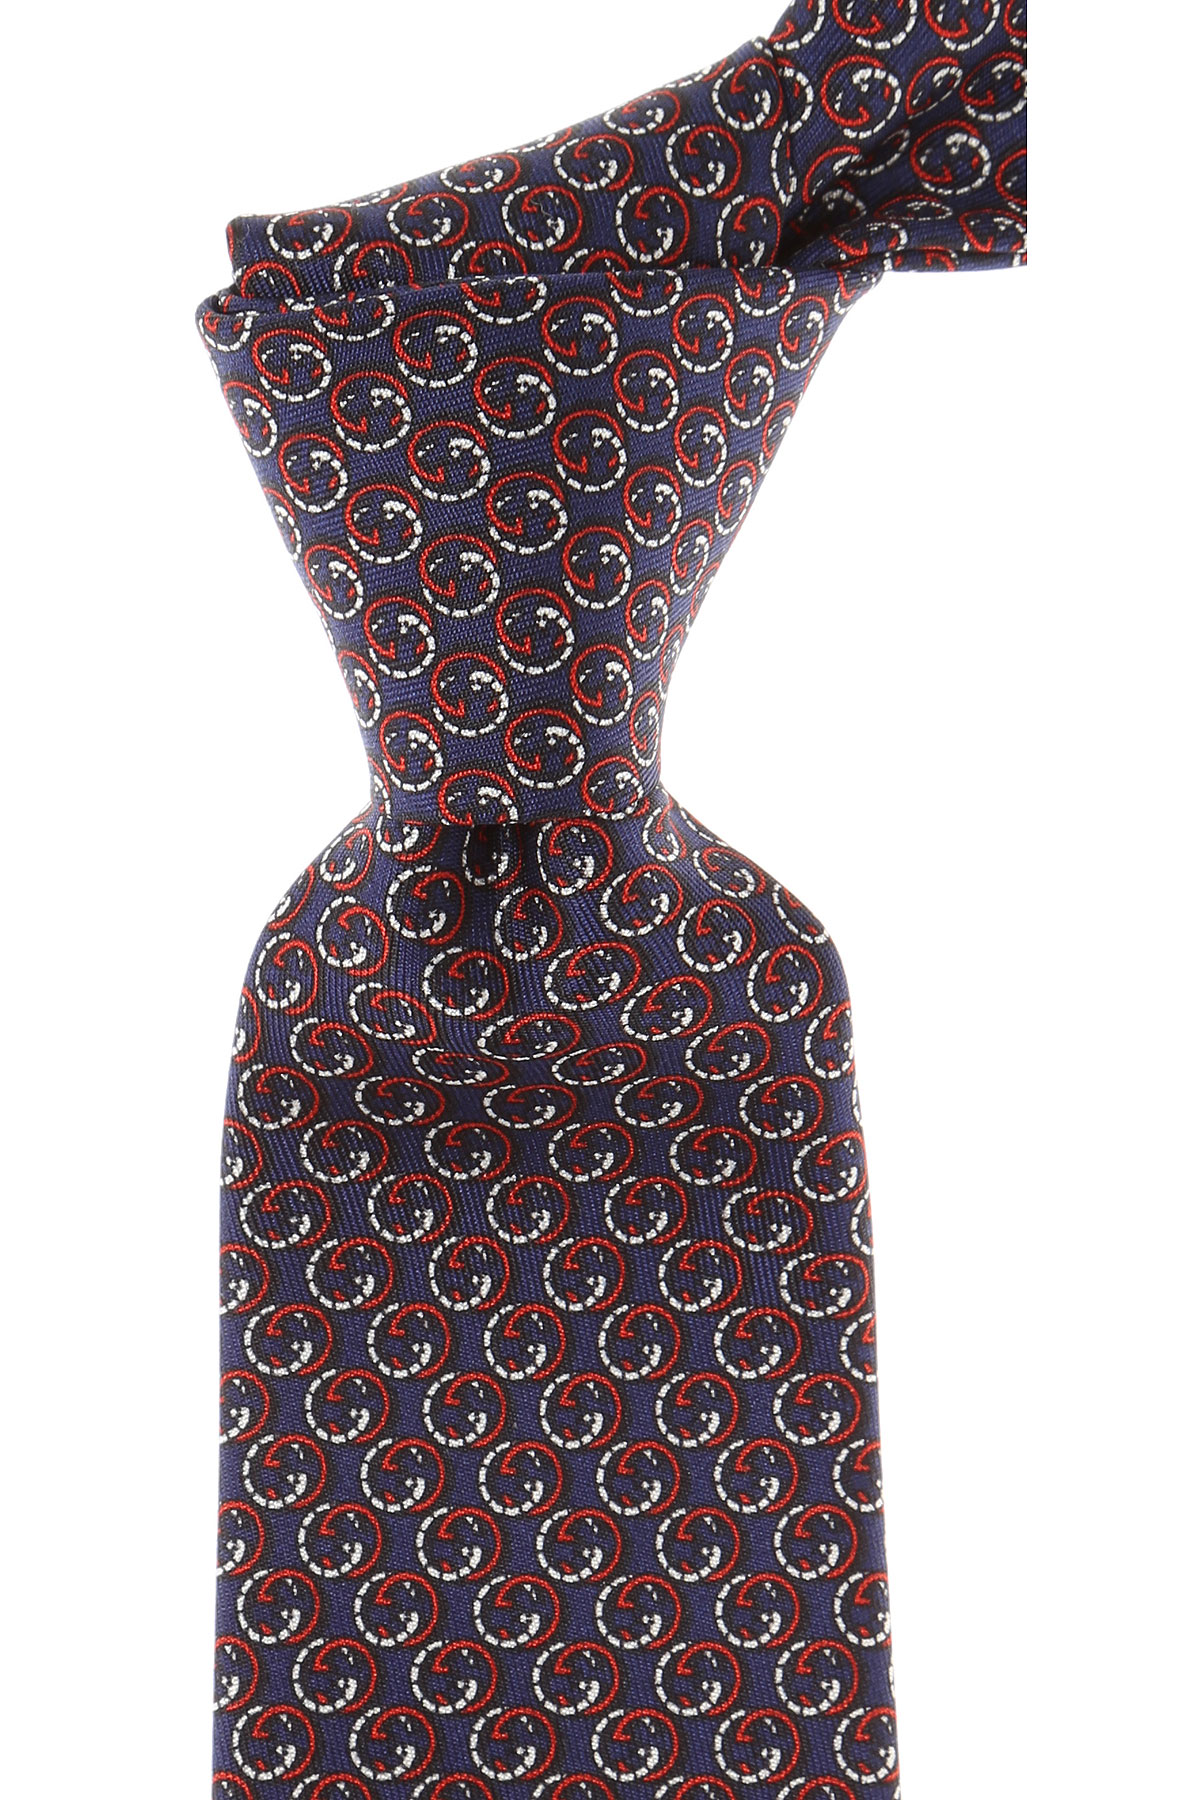 Gucci_Ties_On_Sale_Navy_Blue_Silk_2019